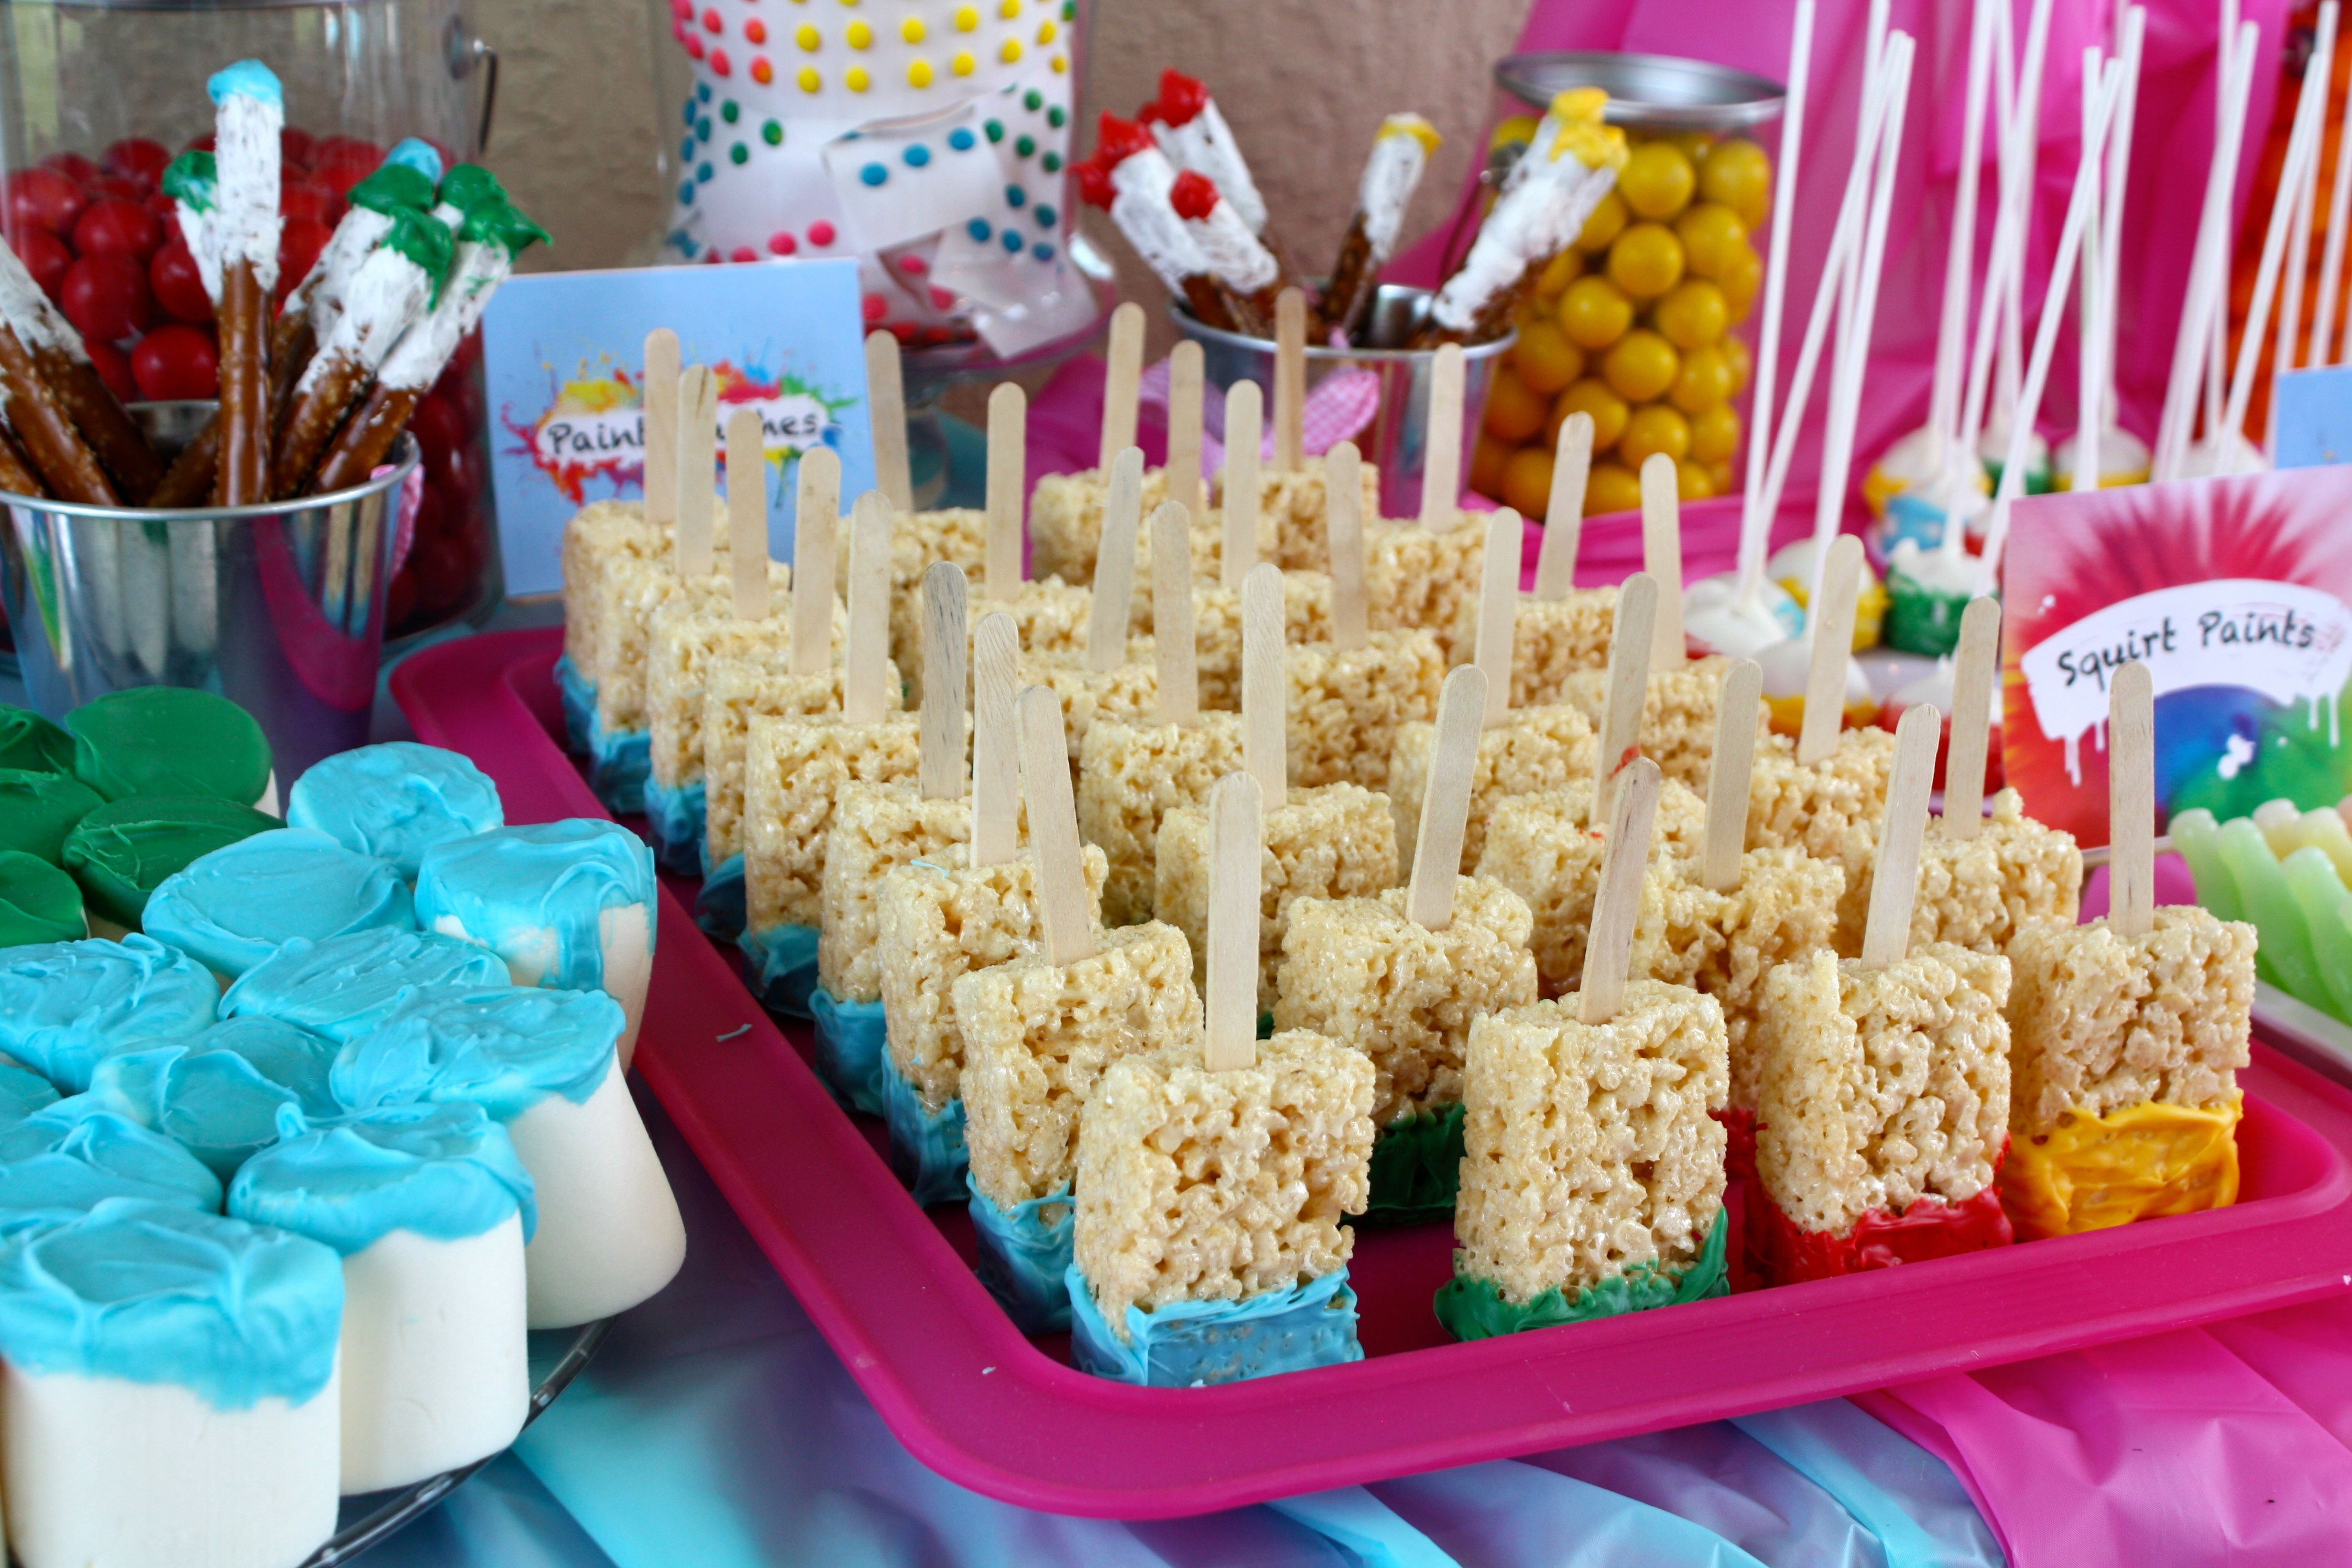 Paint Brushes and Paint Bucket Art Party Foods Art party